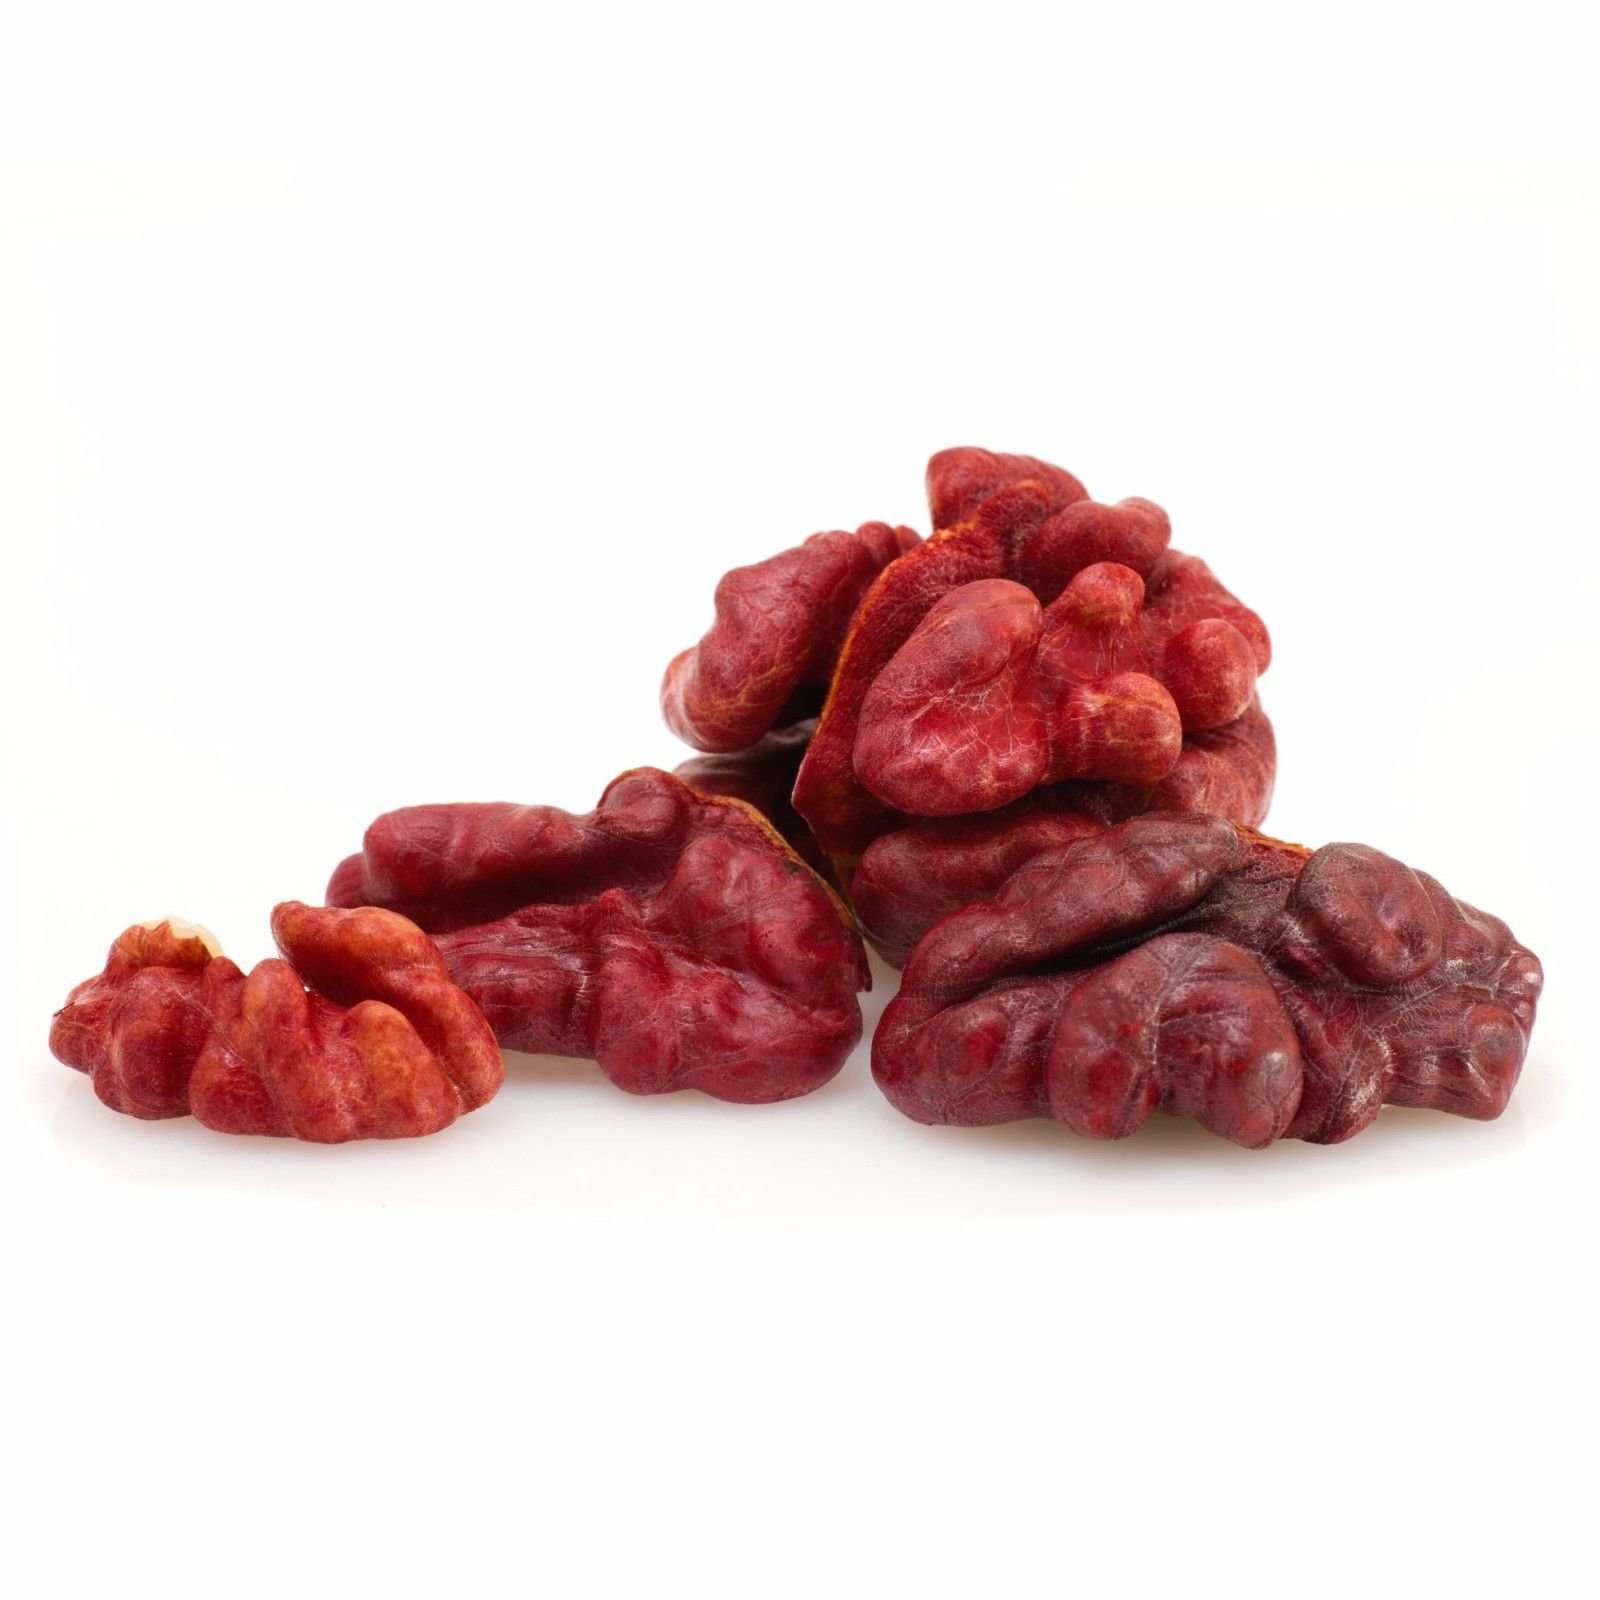 California Red Walnuts, 25 Pounds — Raw, No Shell, Kosher, Unsalted, Natural, Bulk